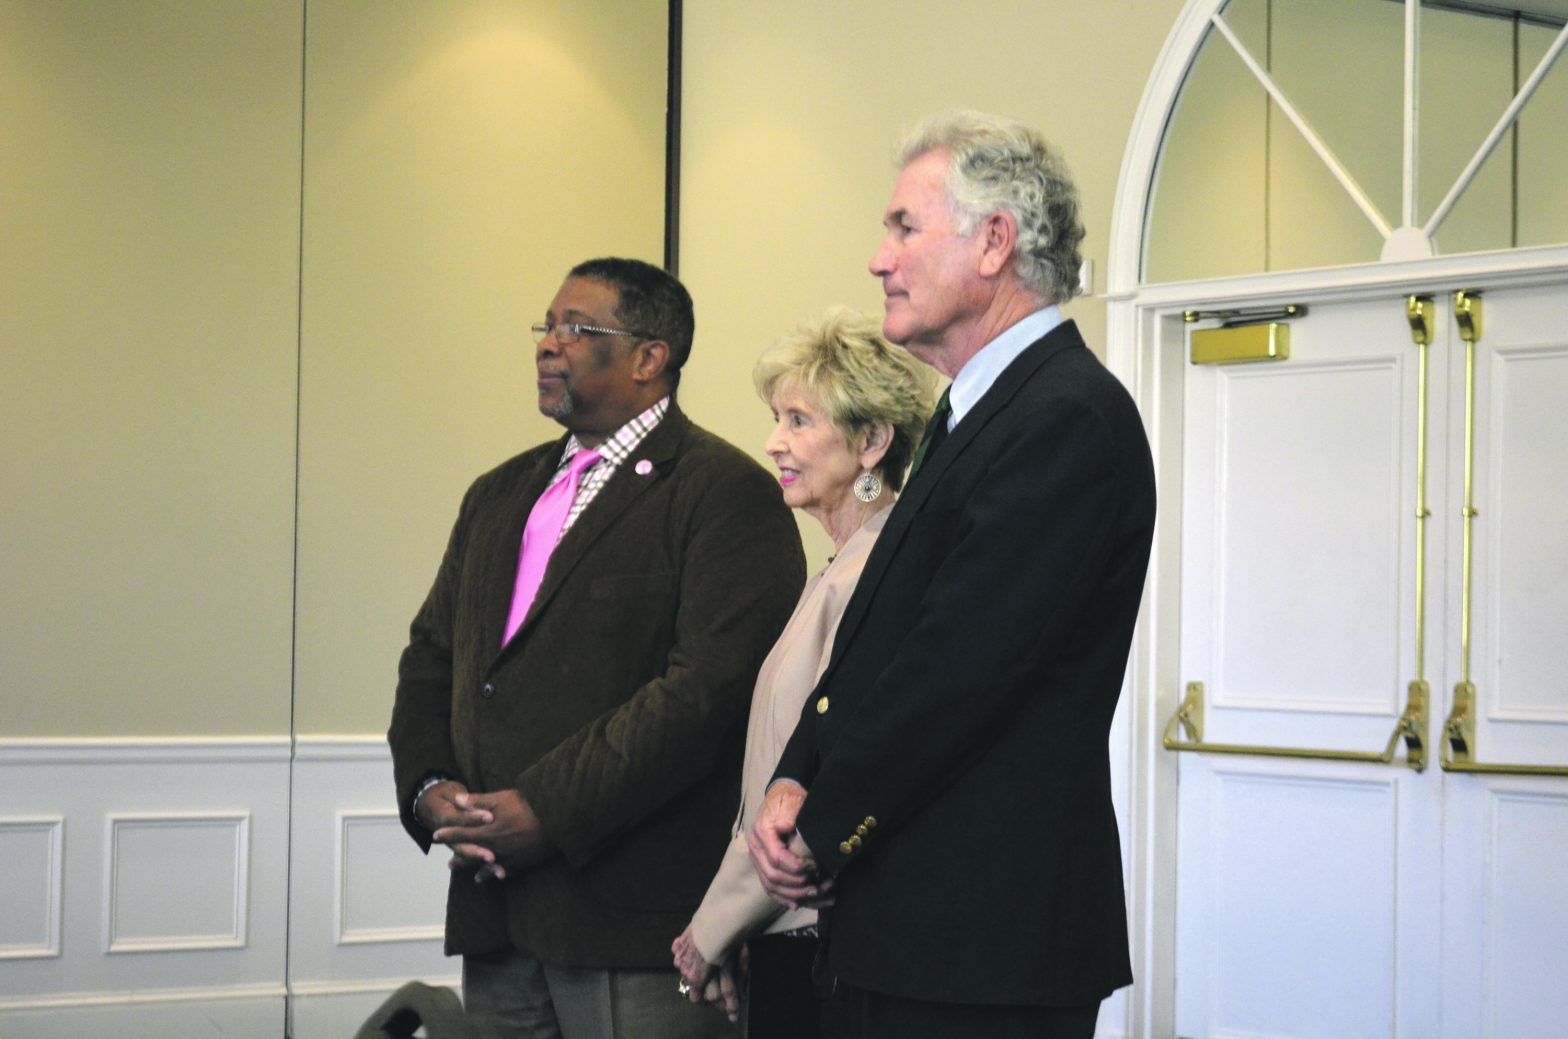 Retired Teachers Host  Luncheon Featuring Ricky  Wolfe And Carl Von Epps